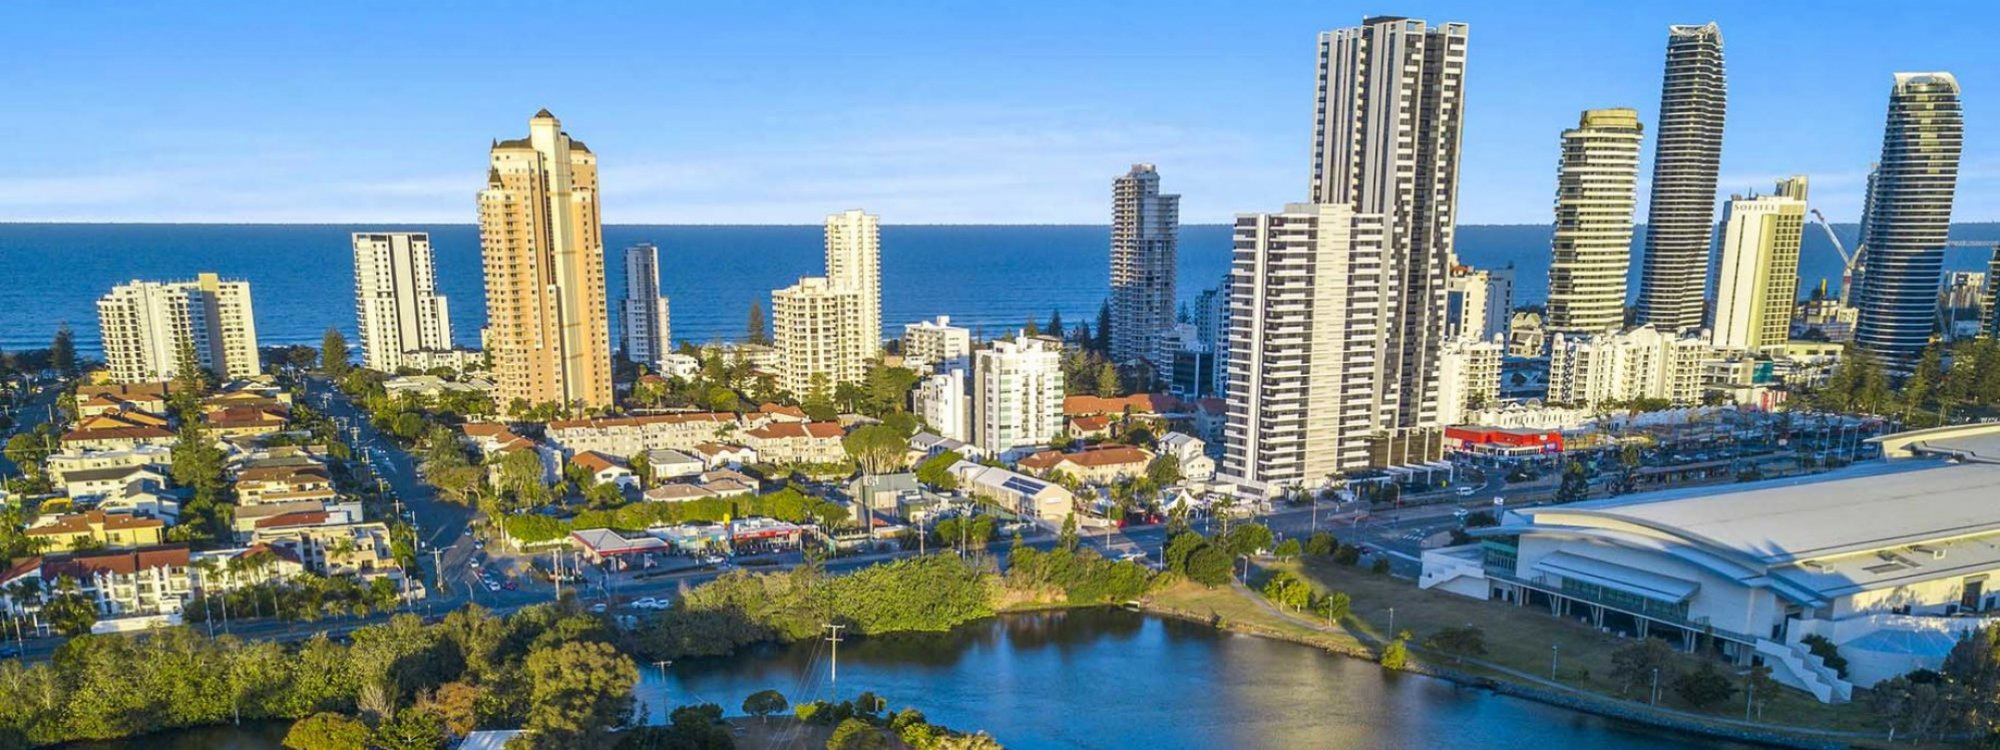 Casa Grande - Broadbeach Waters - Aerial Towards Broadbeach and Convention Centre b